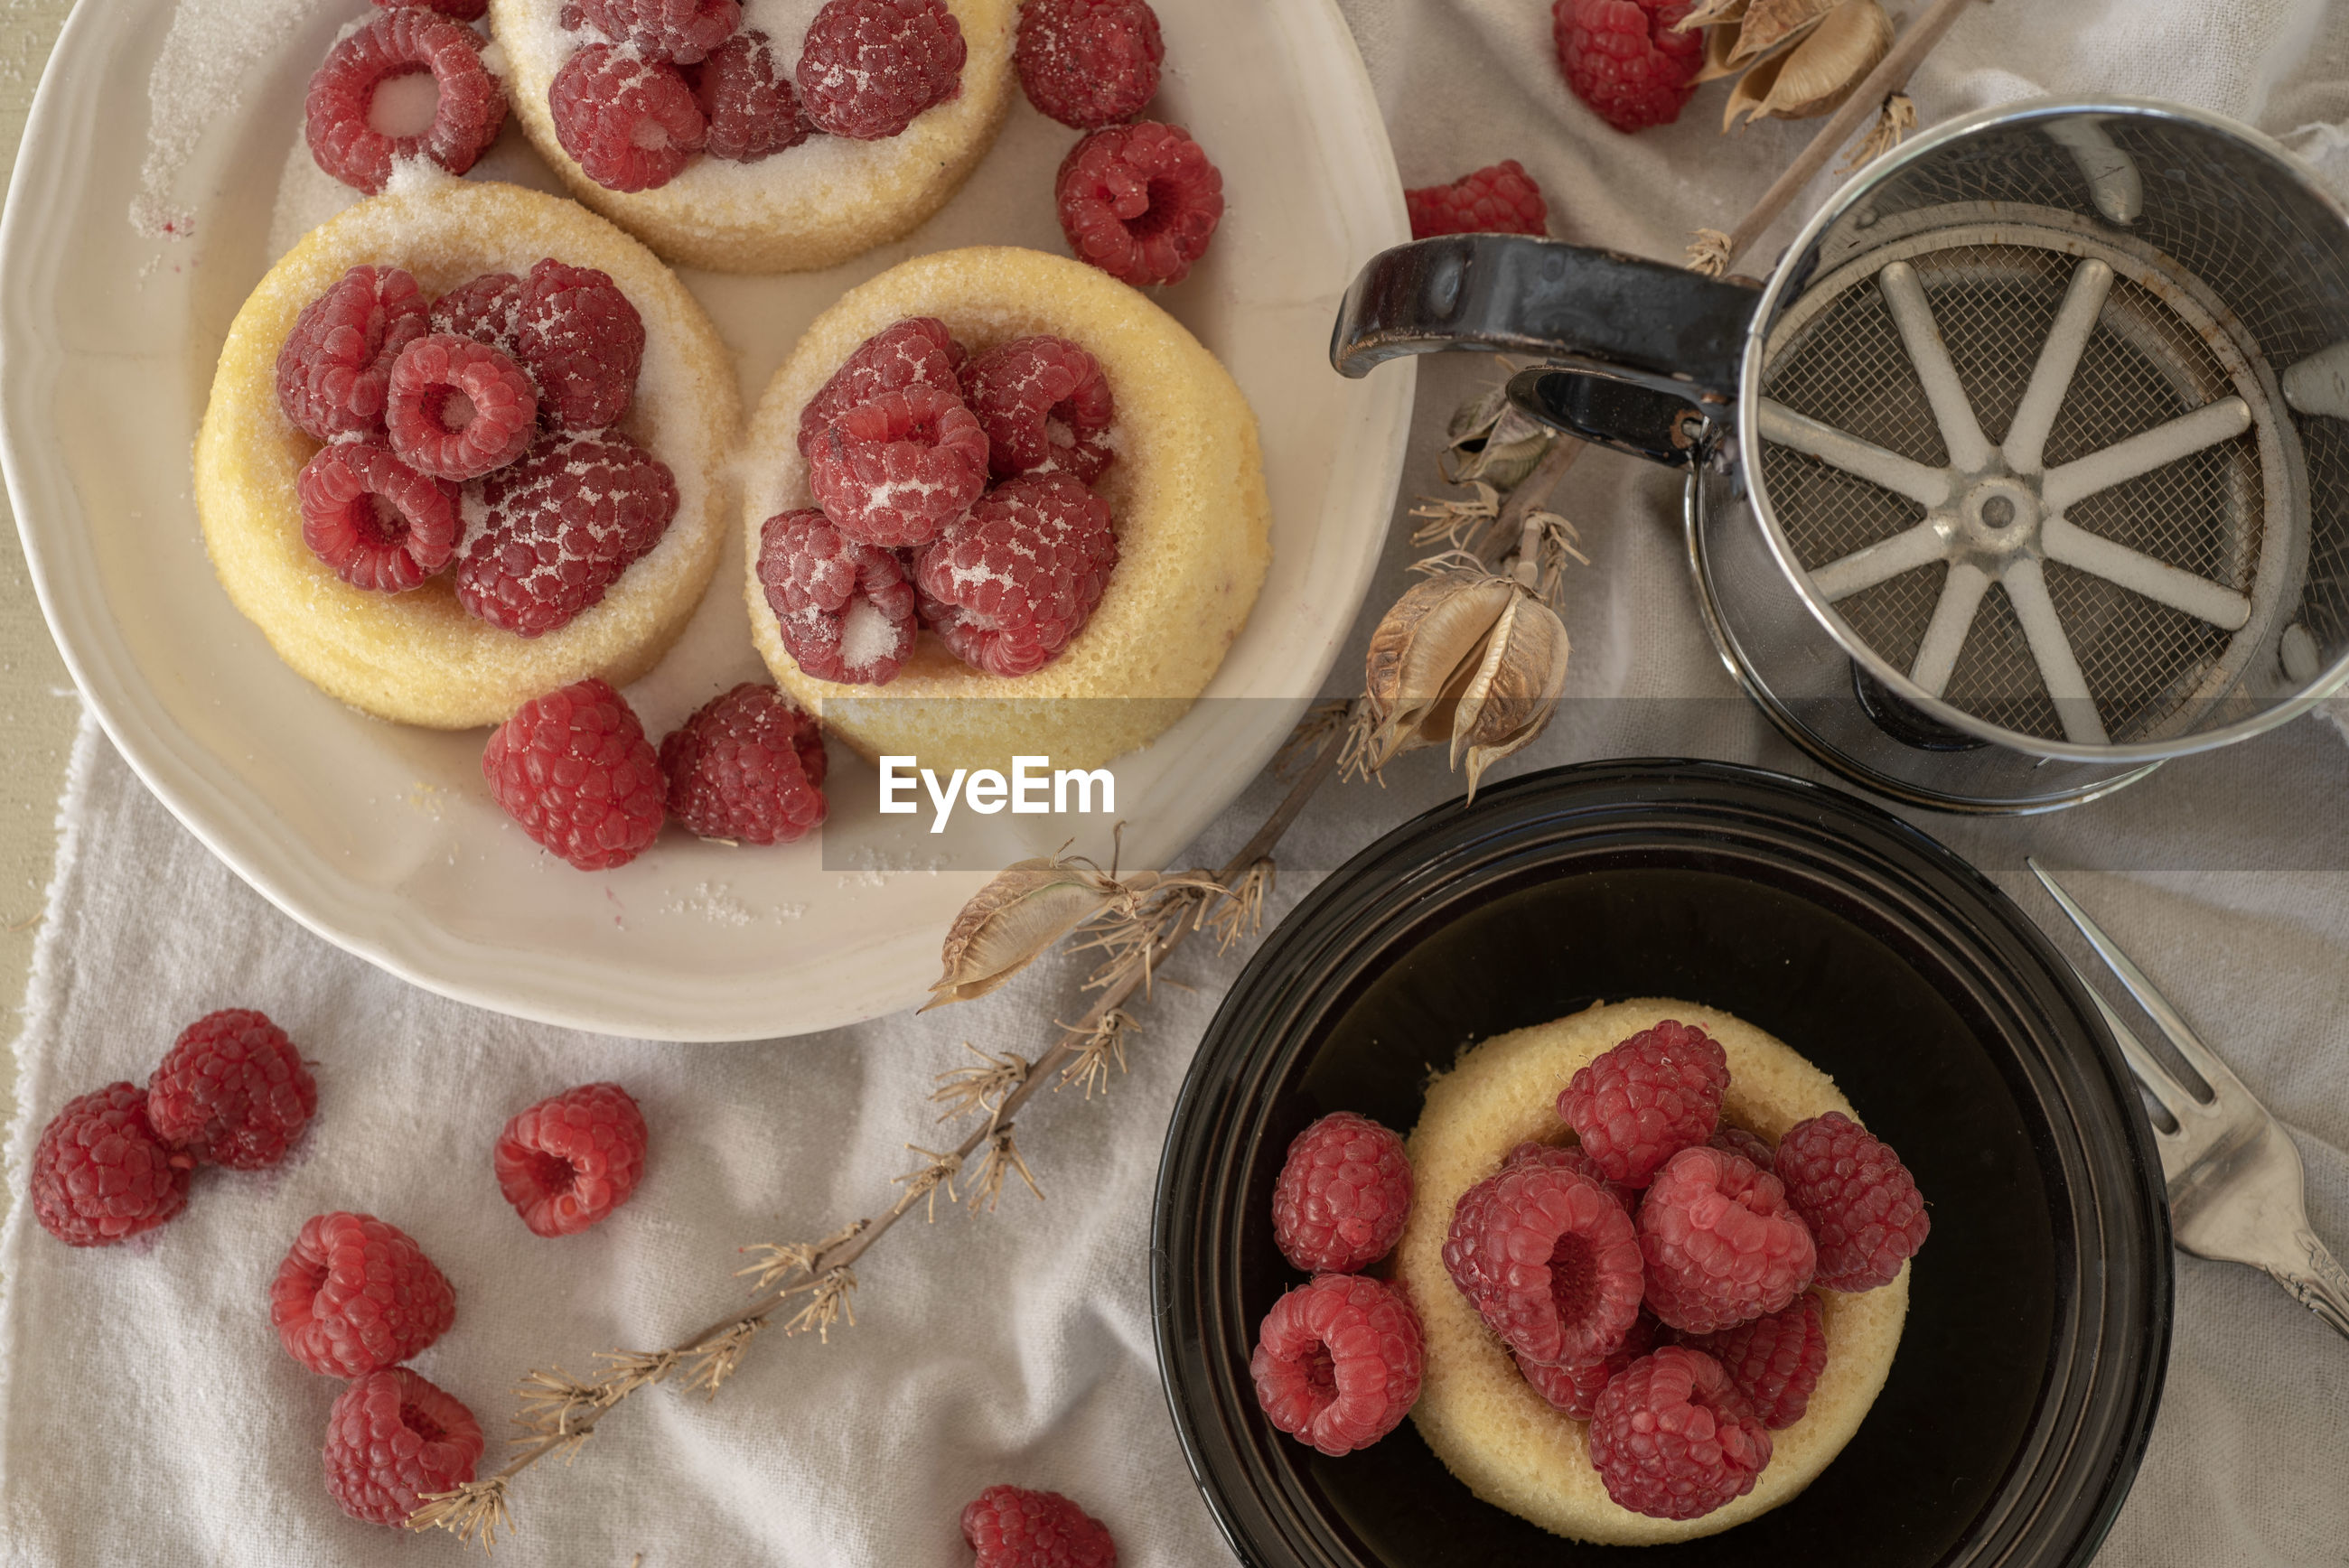 High angle view of berry fruit desert cakes on table